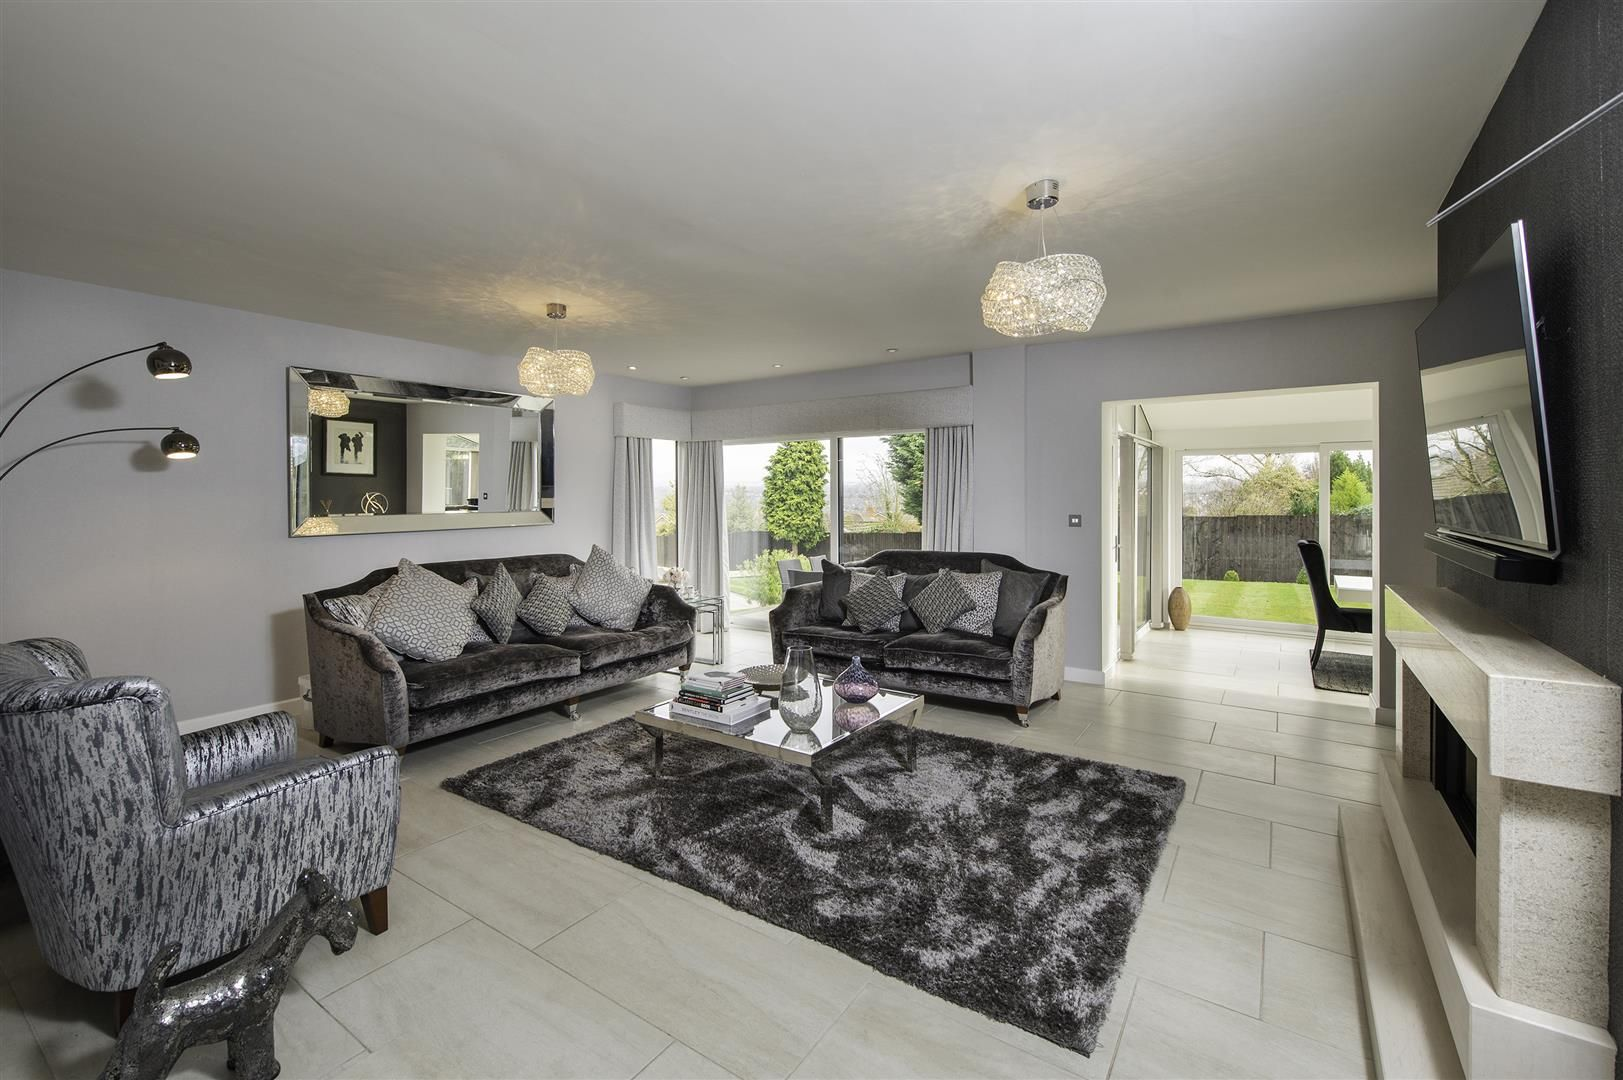 4 bed detached for sale in Stourton  - Property Image 5